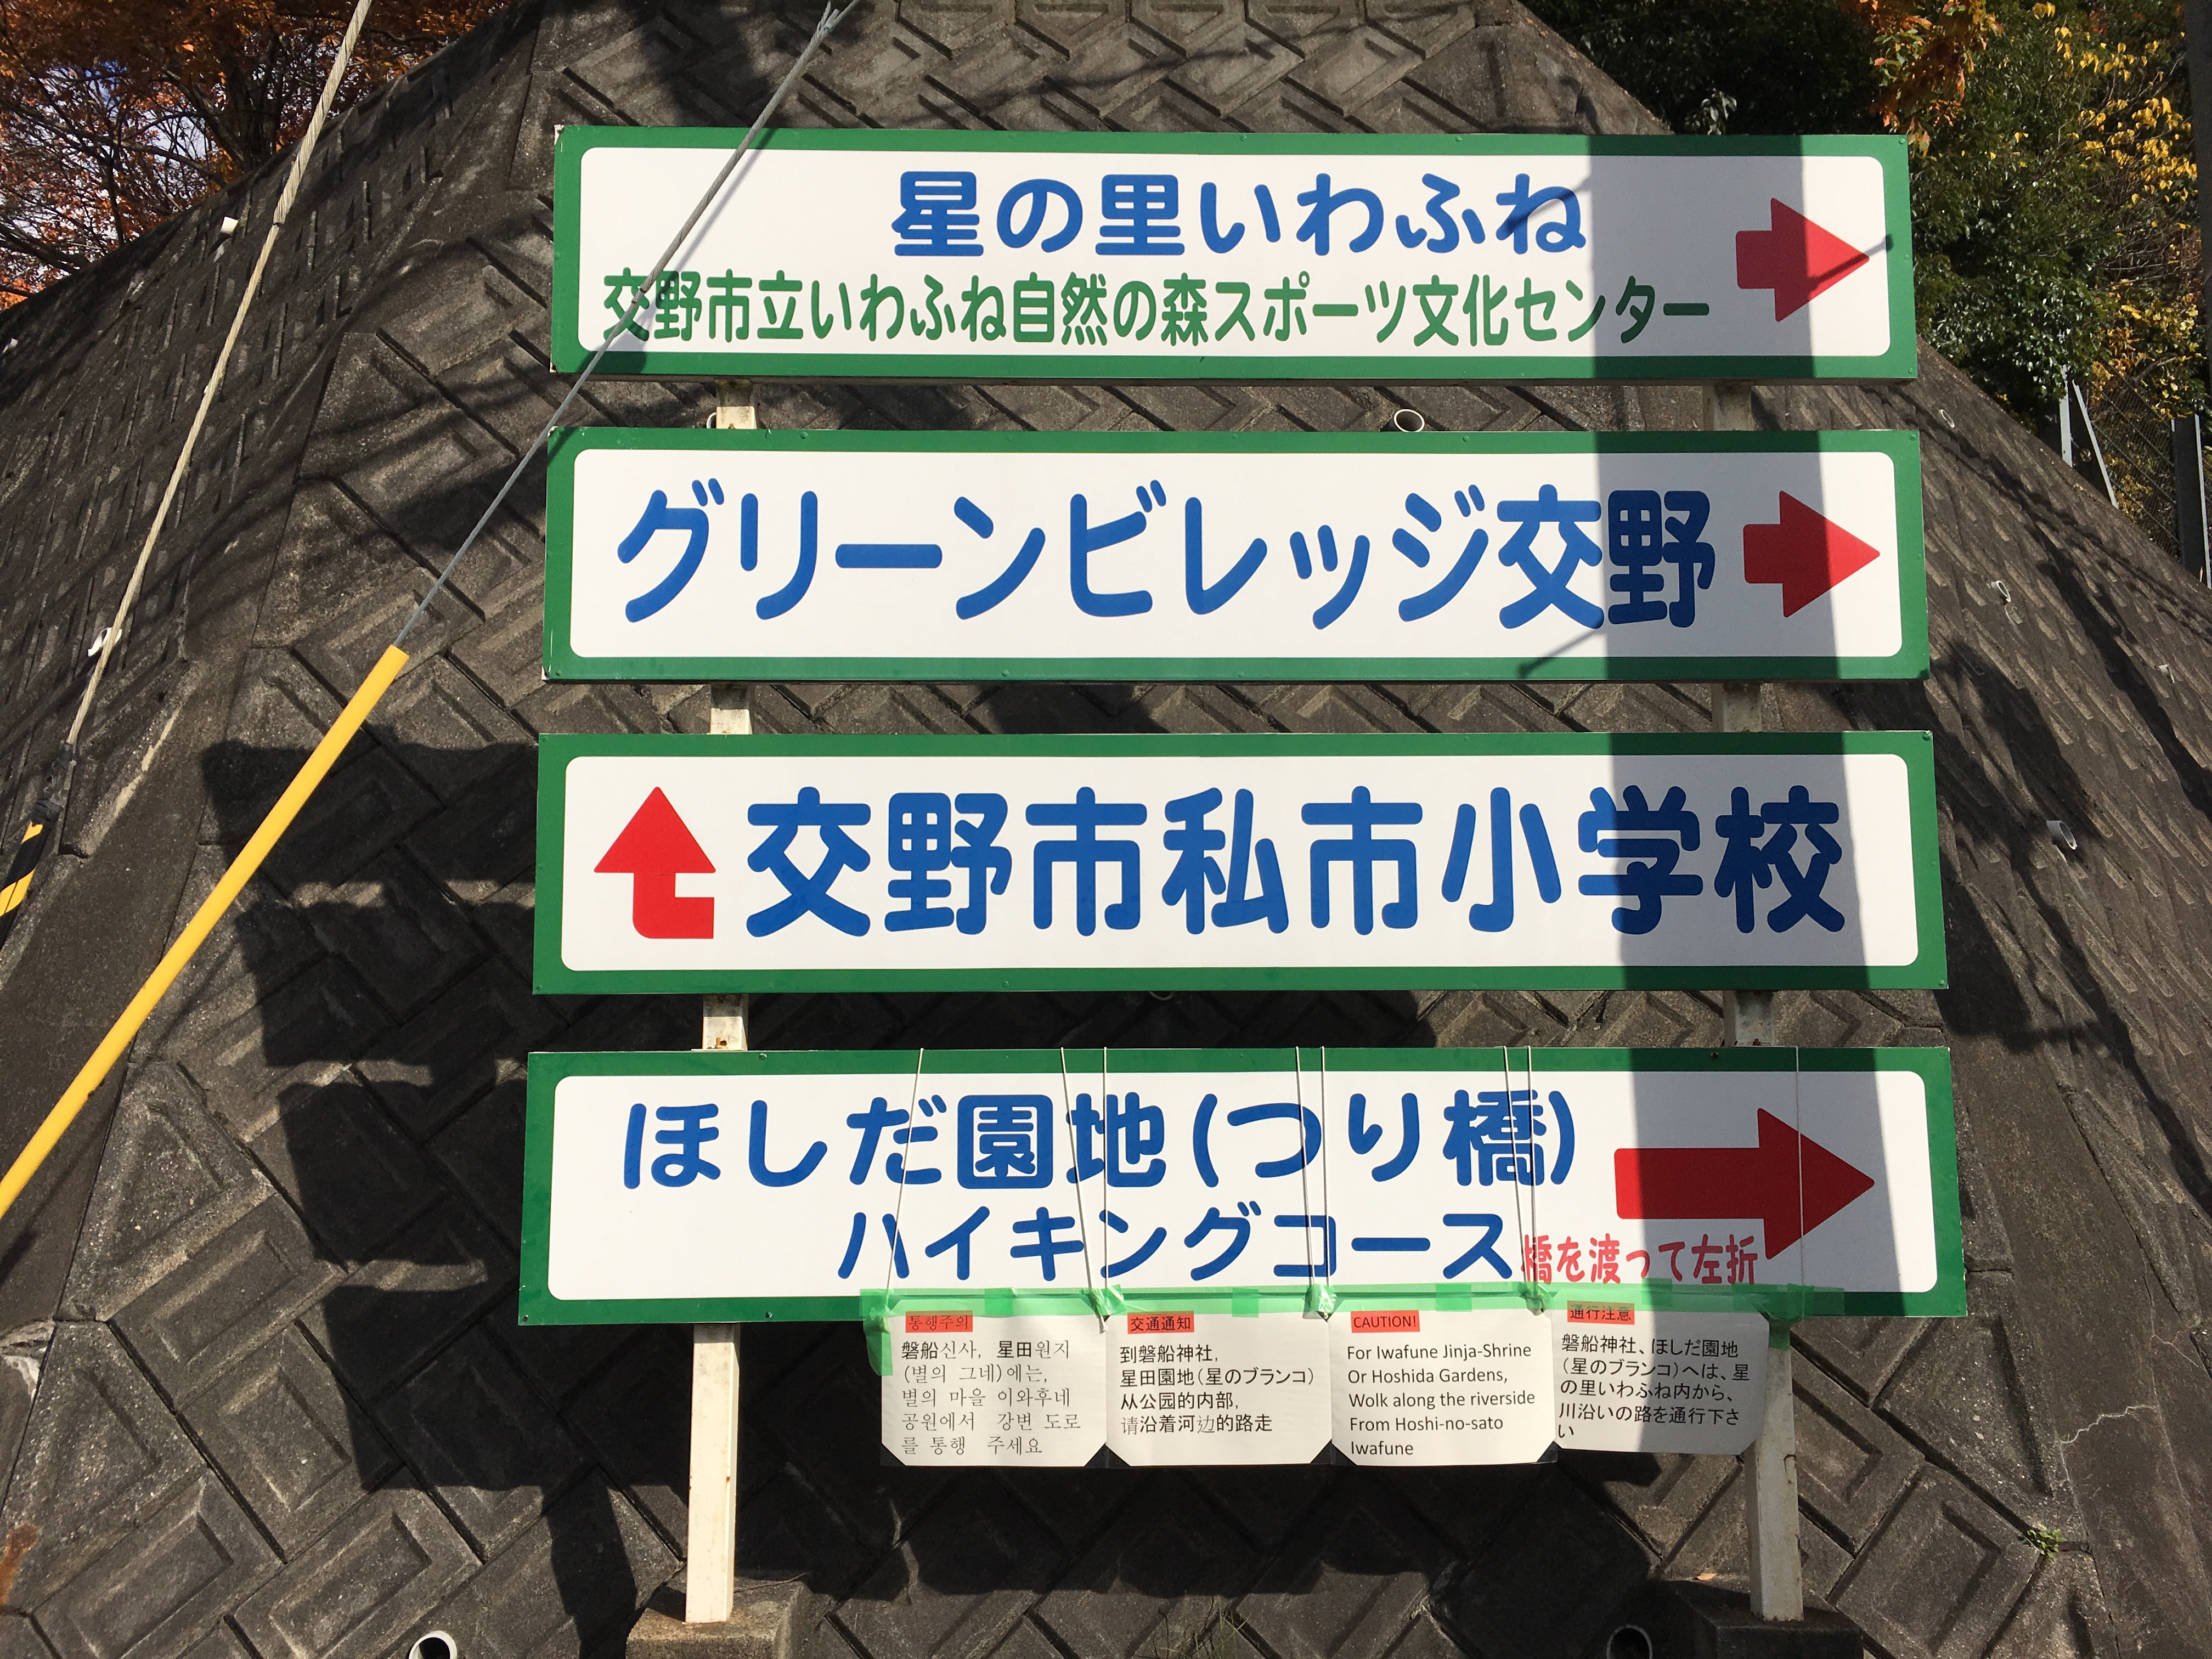 various directional signs indicating nearby activities